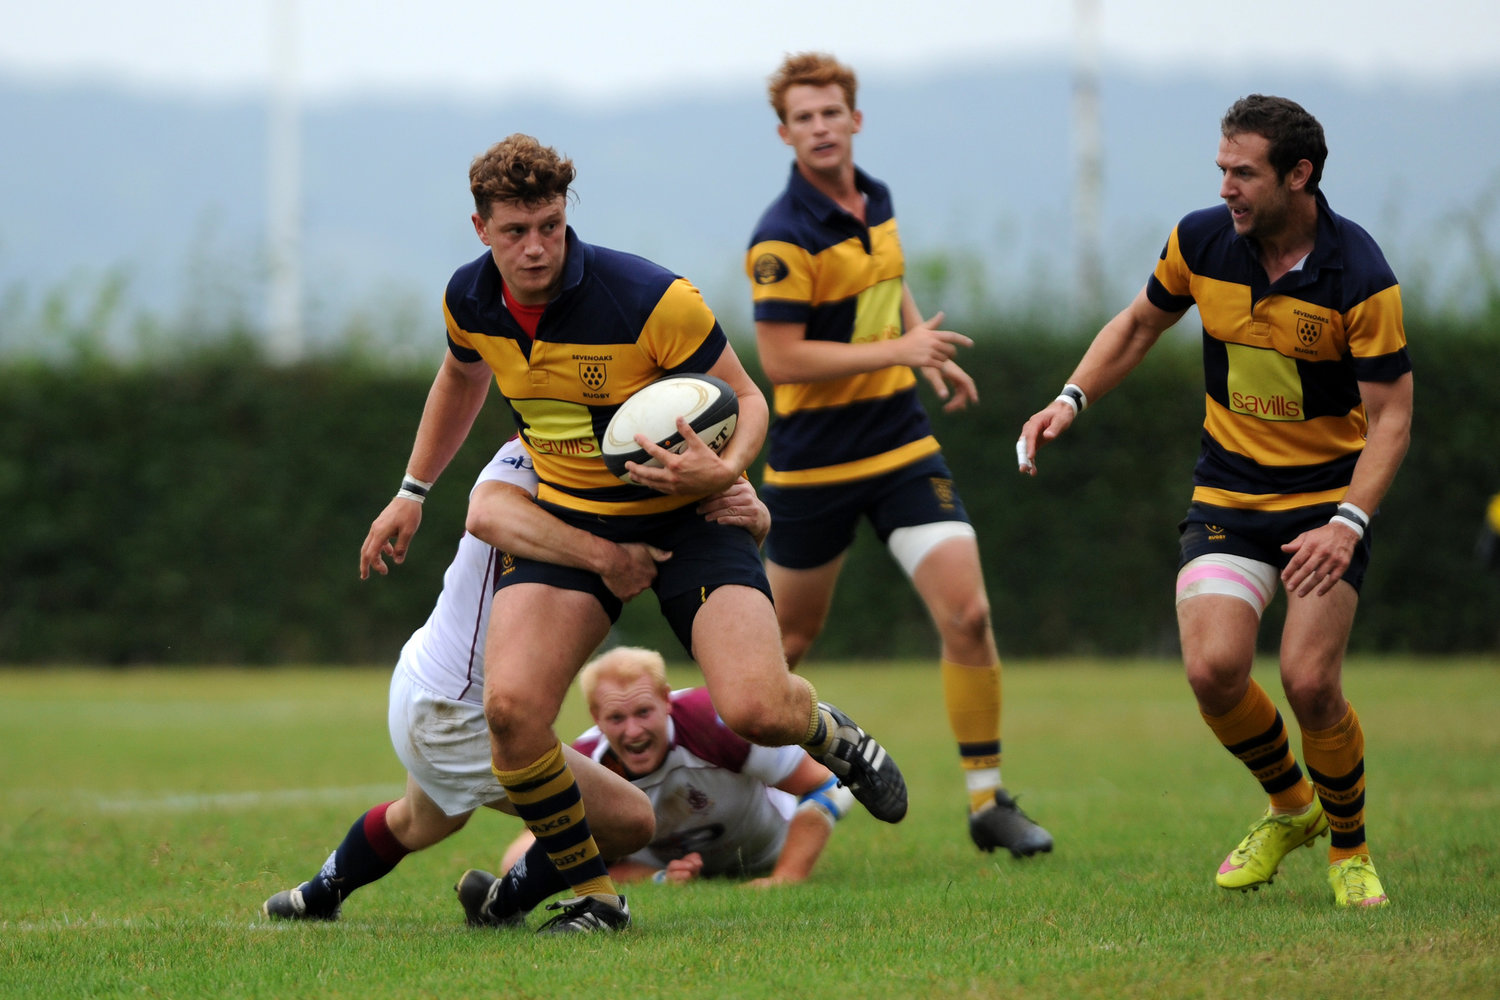 Both the 2nd XV and the 3rd XV posted a half century of points in their matches last weekend.Photo Credit: David Purday